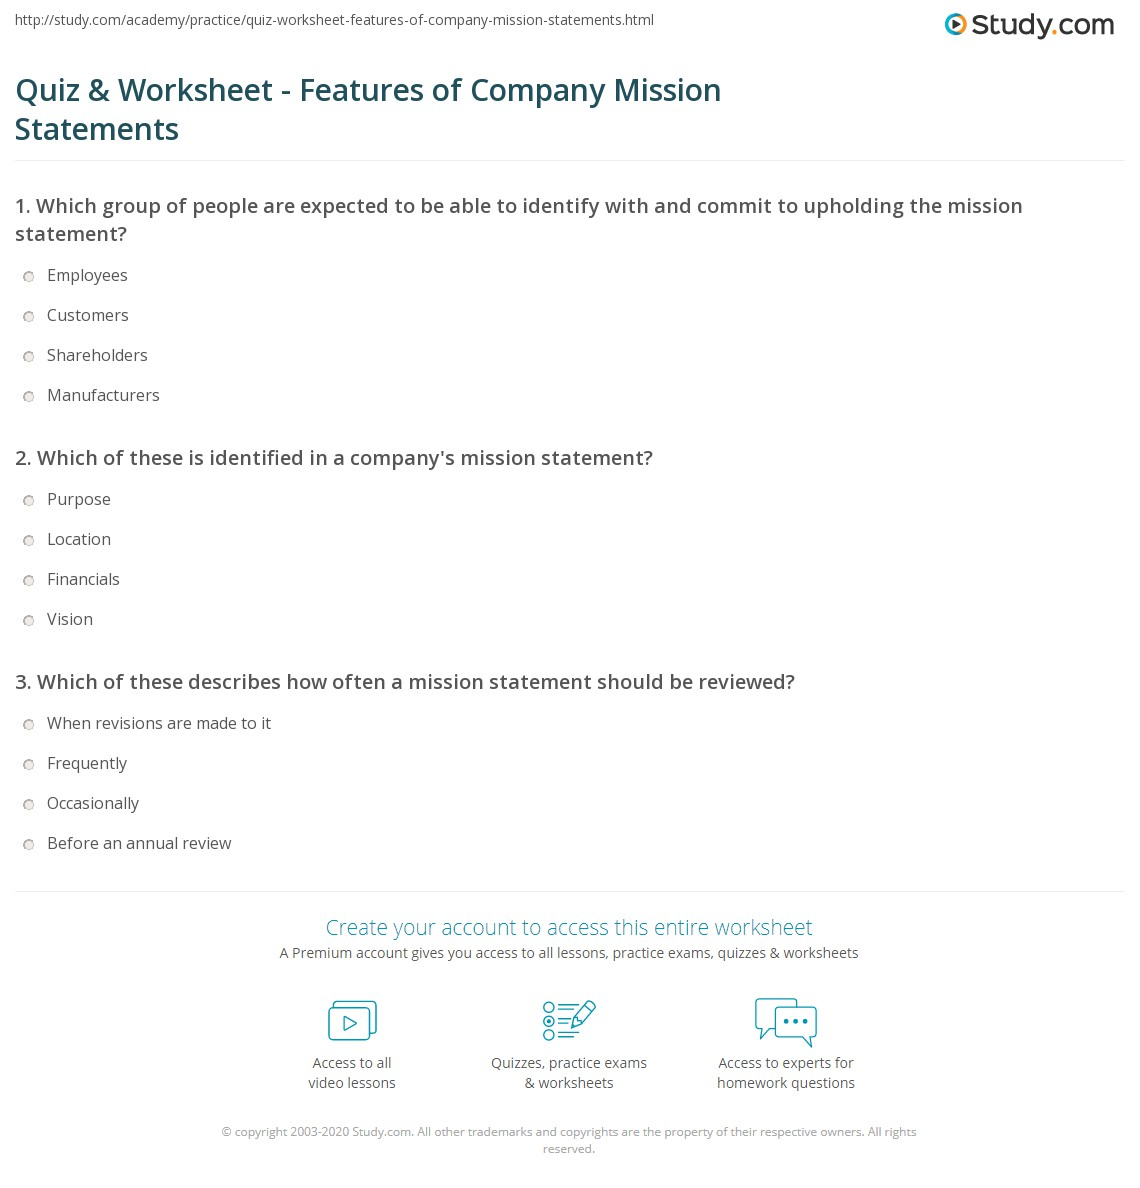 Quiz Worksheet Features Of Company Mission Statements Study